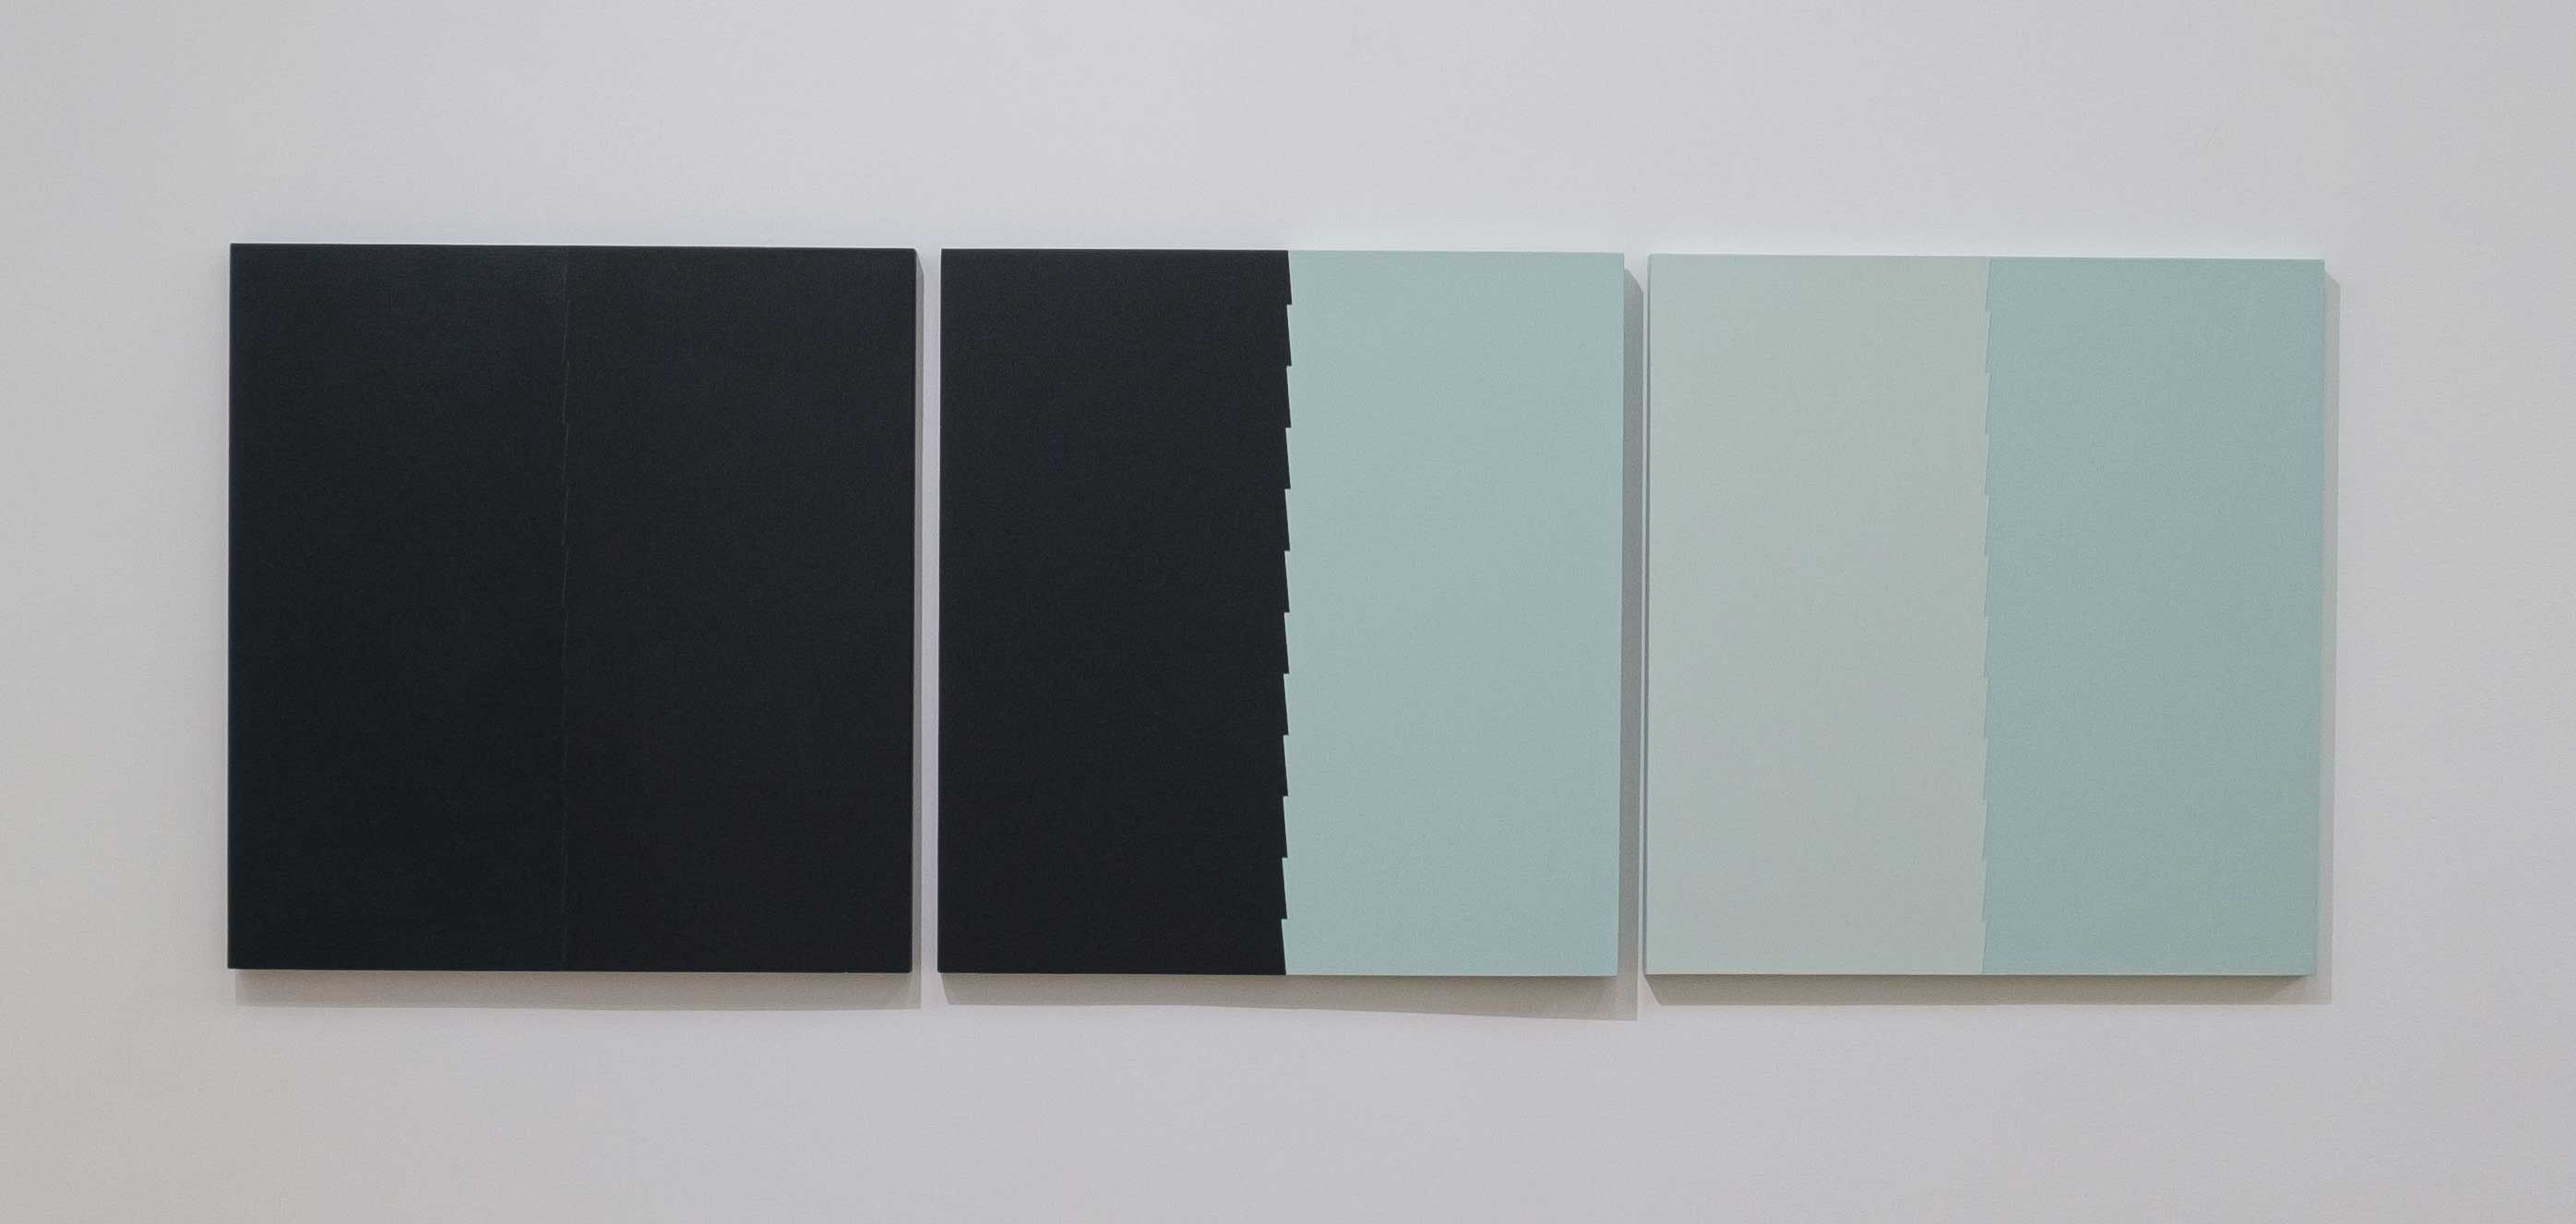 Tess Jaray 2015 Oil on board 20.1 x 57 inches (51.1 x 144.8 cm) 2019 Marc Straus Gallery